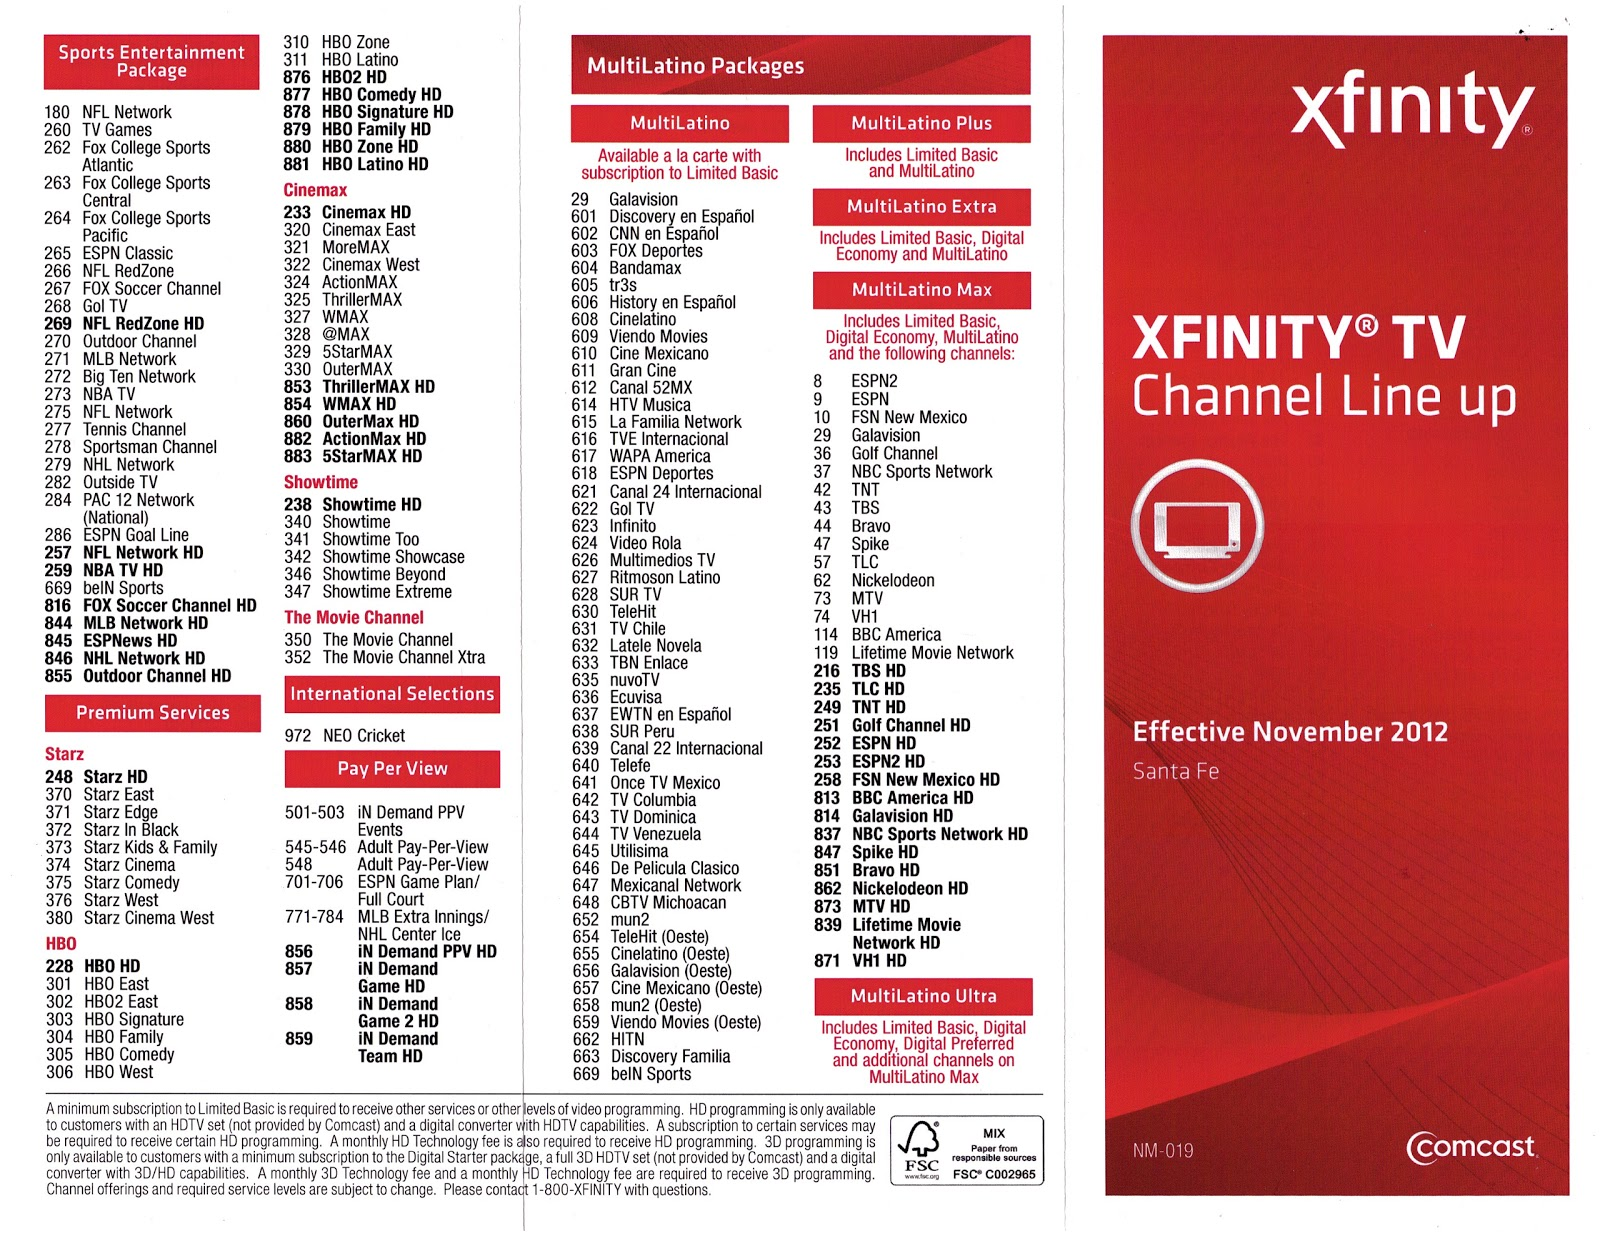 comcast cable tv channel guide